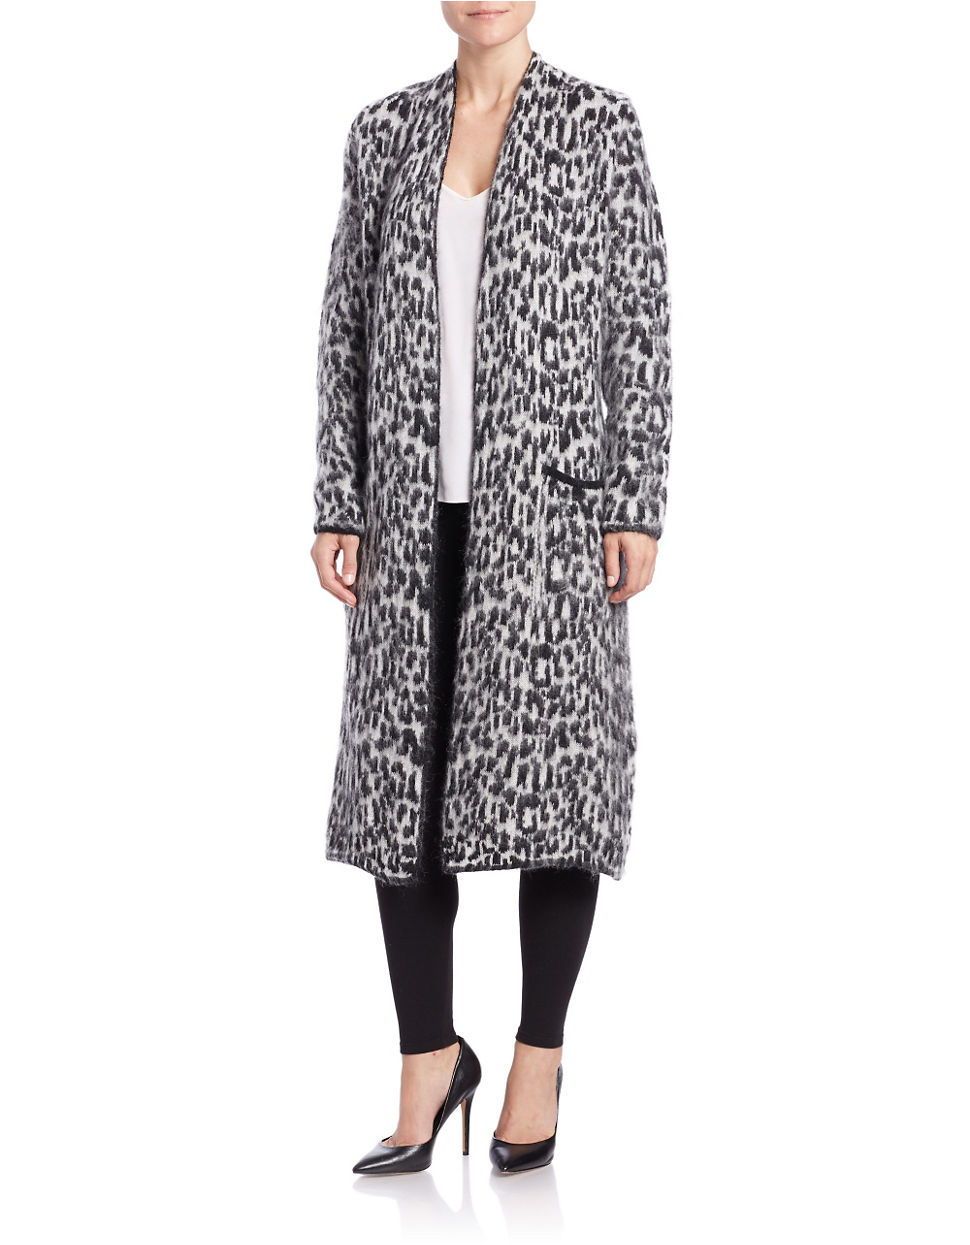 Essentiel antwerp Long Leopard-print Cardigan in Black | Lyst